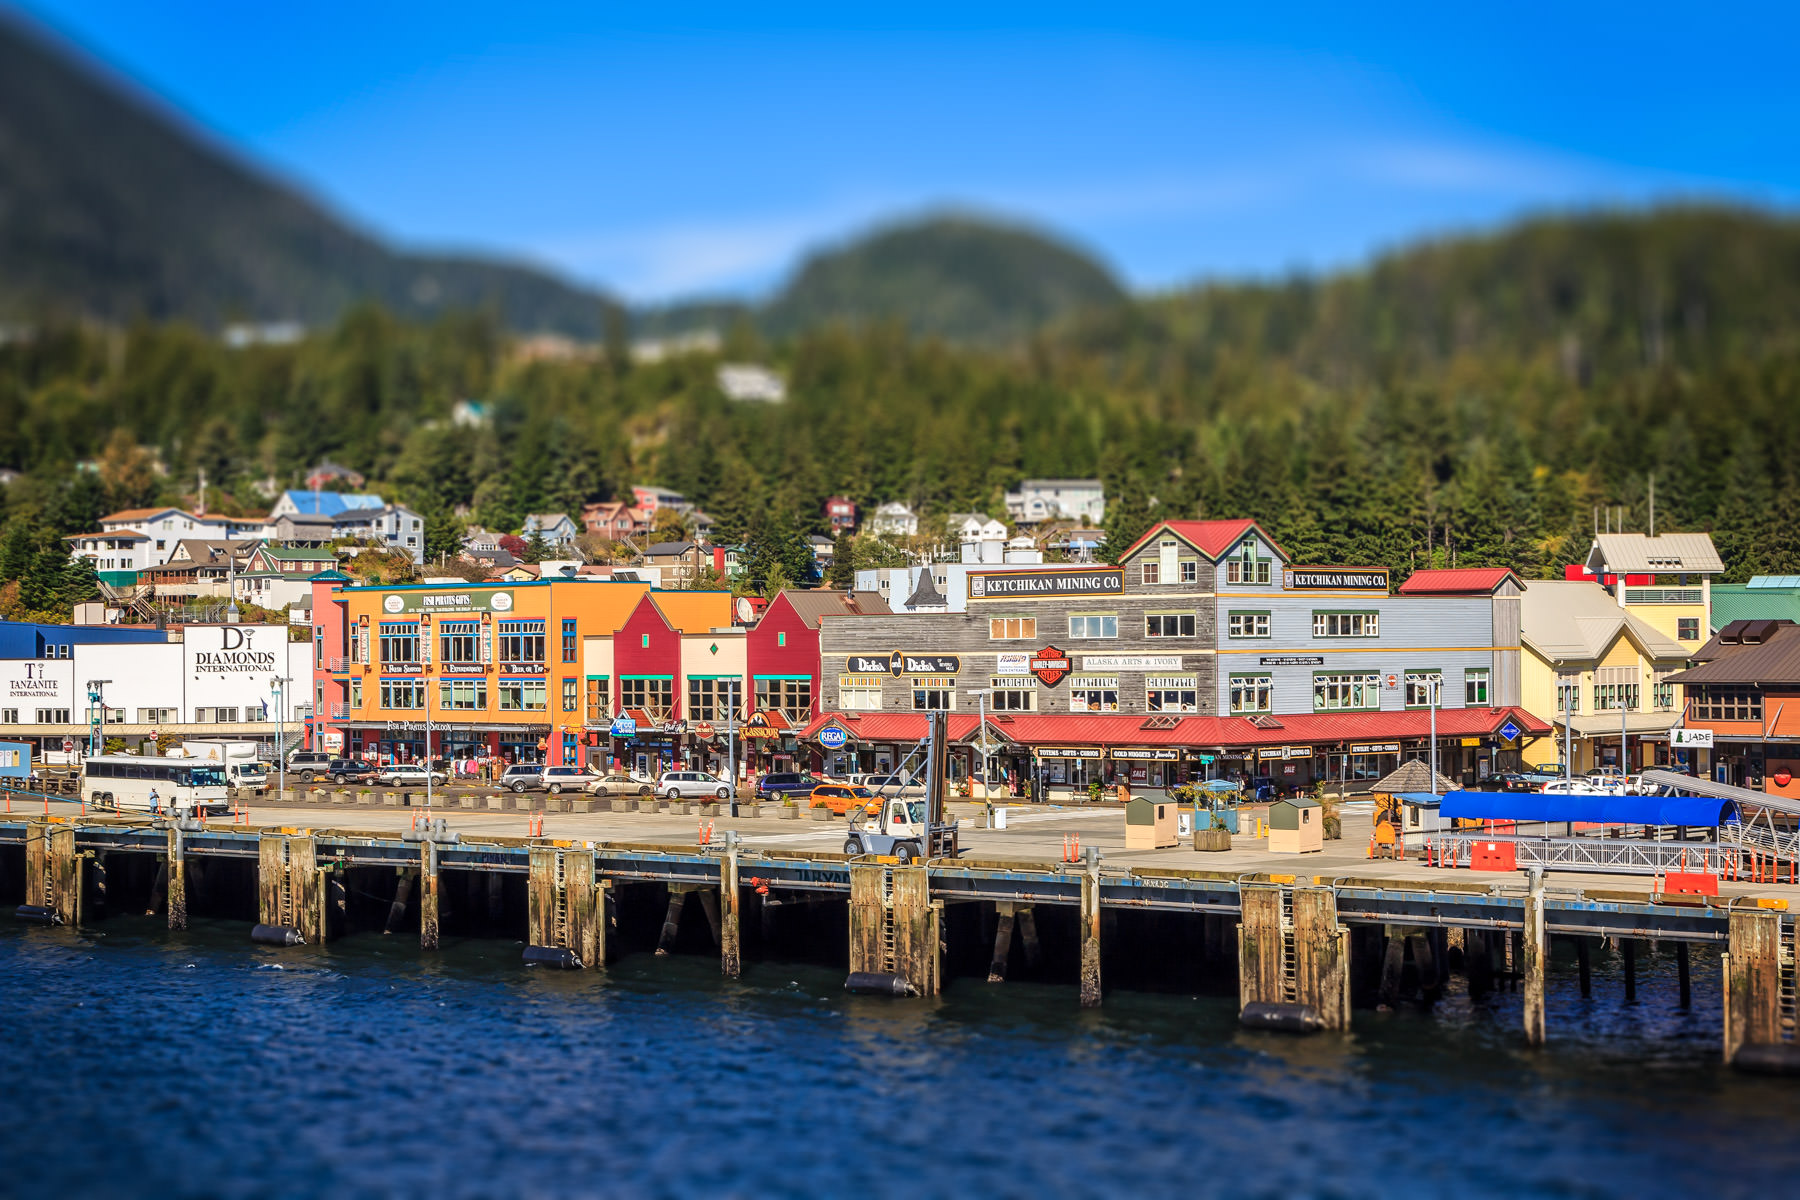 The cruise ship pier at Ketchikan, Alaska.